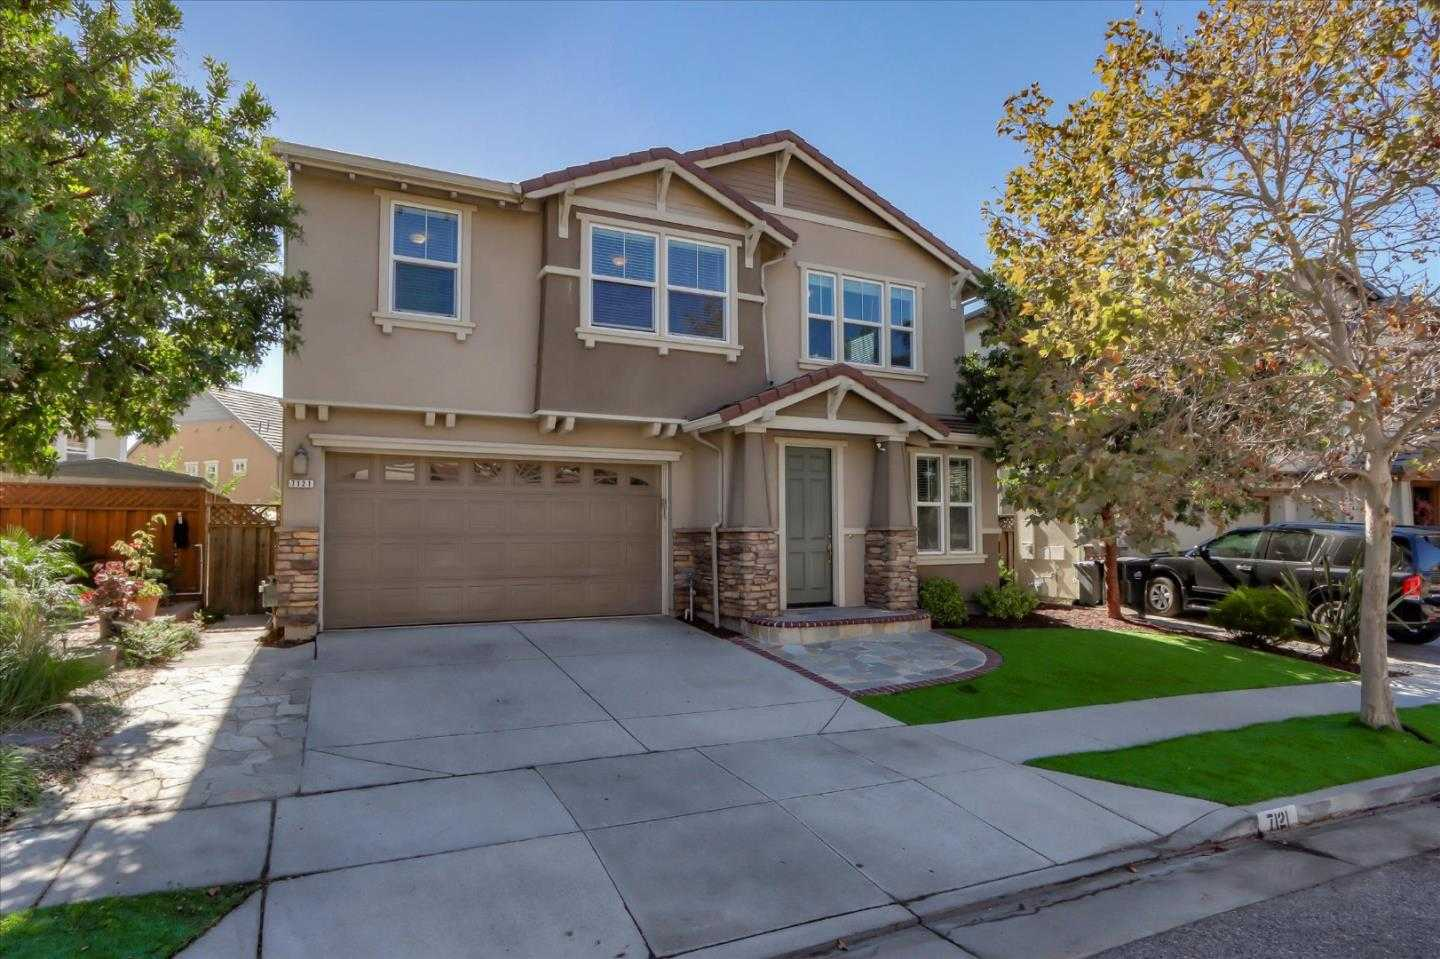 $1,169,000 - 4Br/3Ba -  for Sale in San Jose